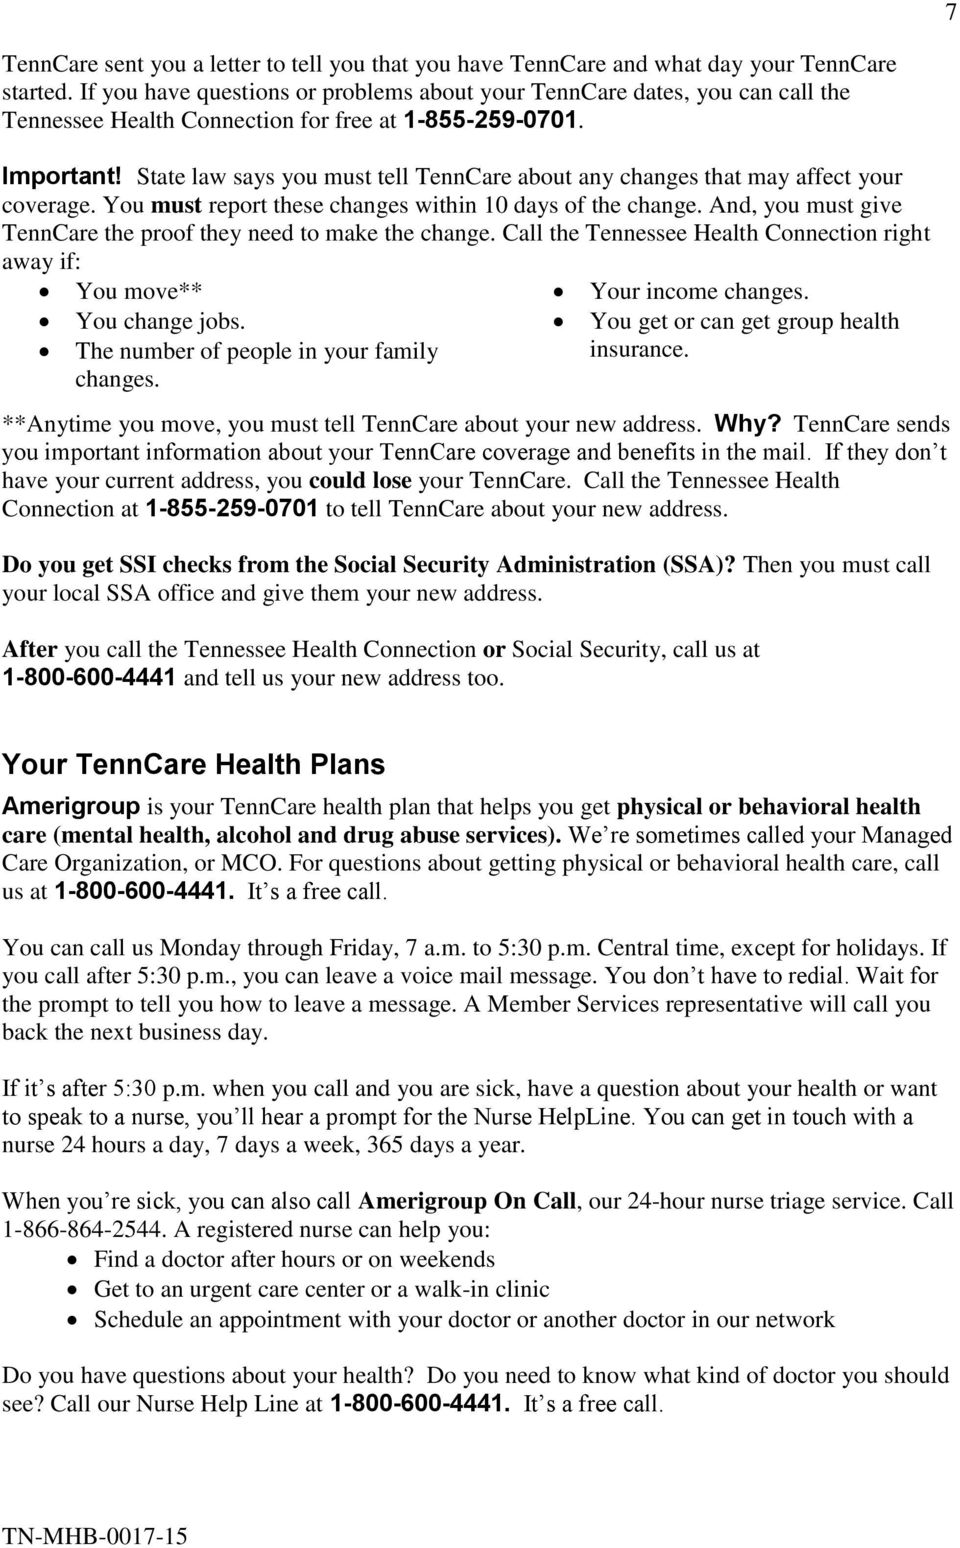 State law says you must tell TennCare about any changes that may affect your coverage. You must report these changes within 10 days of the change.